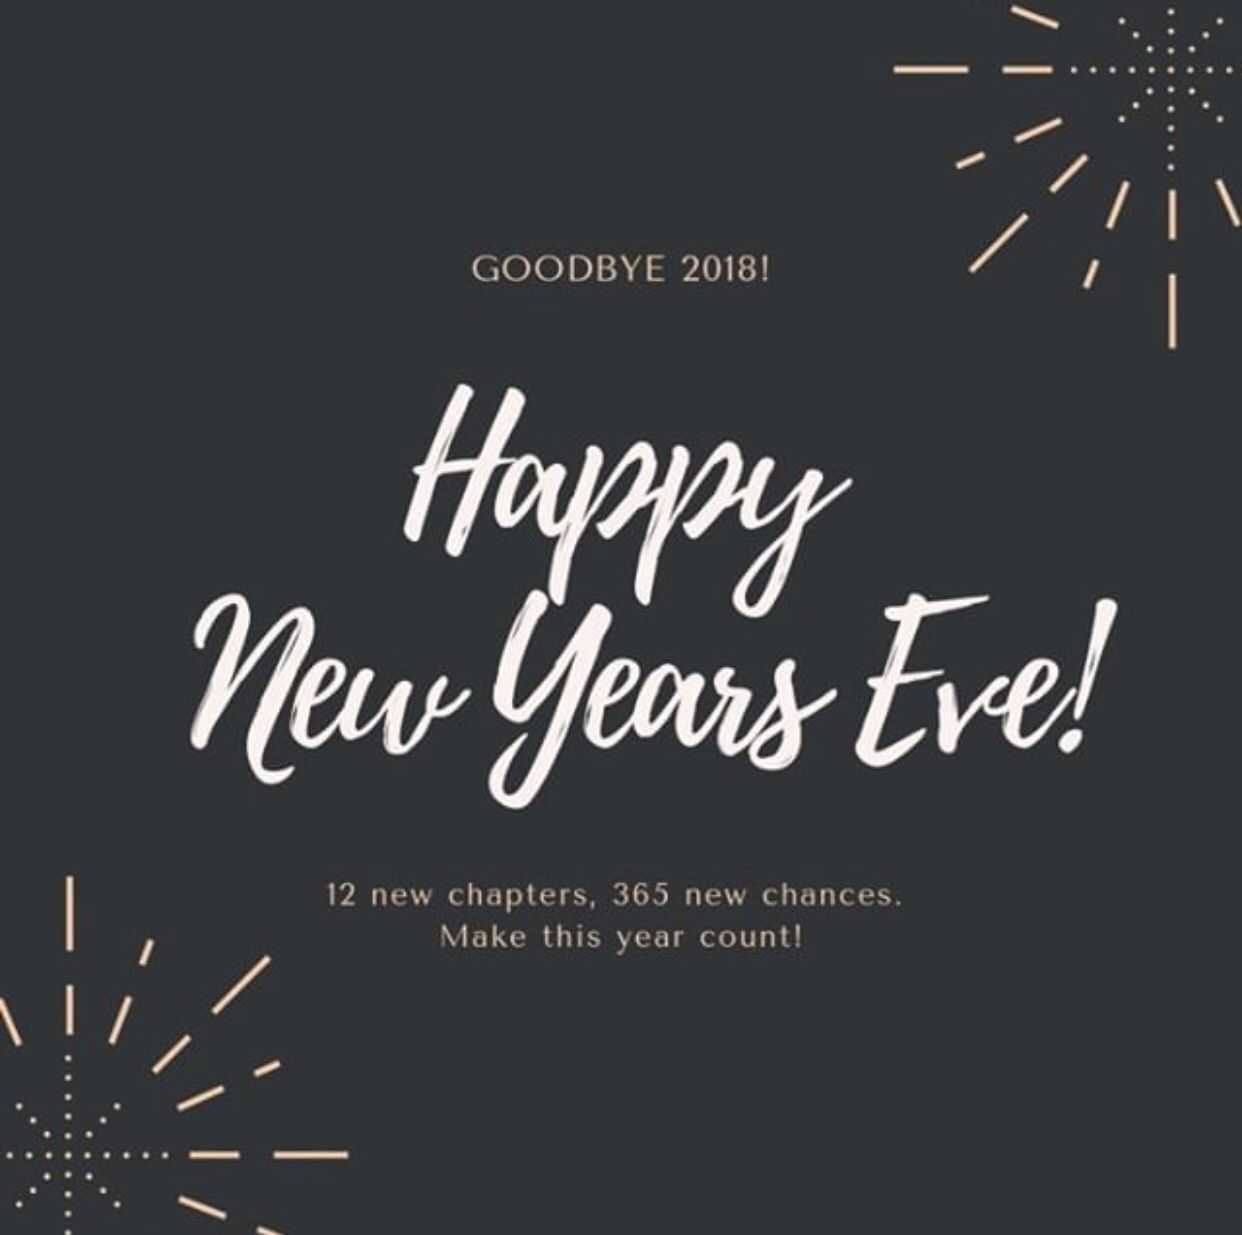 Happy New Years Happy New Years Eve Tampa Real Estate Happy New Year